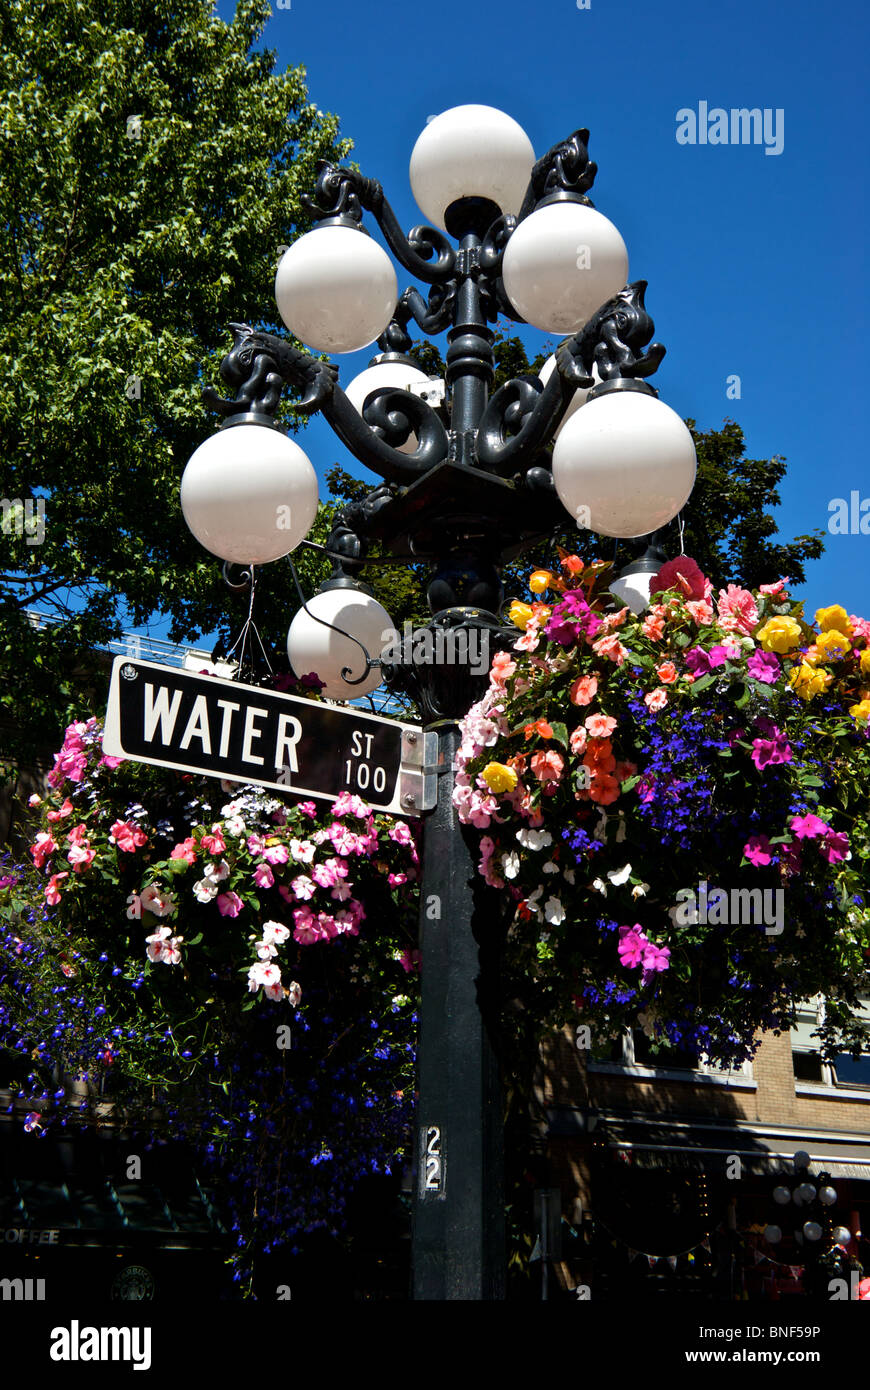 water street sign on lamp post with globe light bulb holders hanging